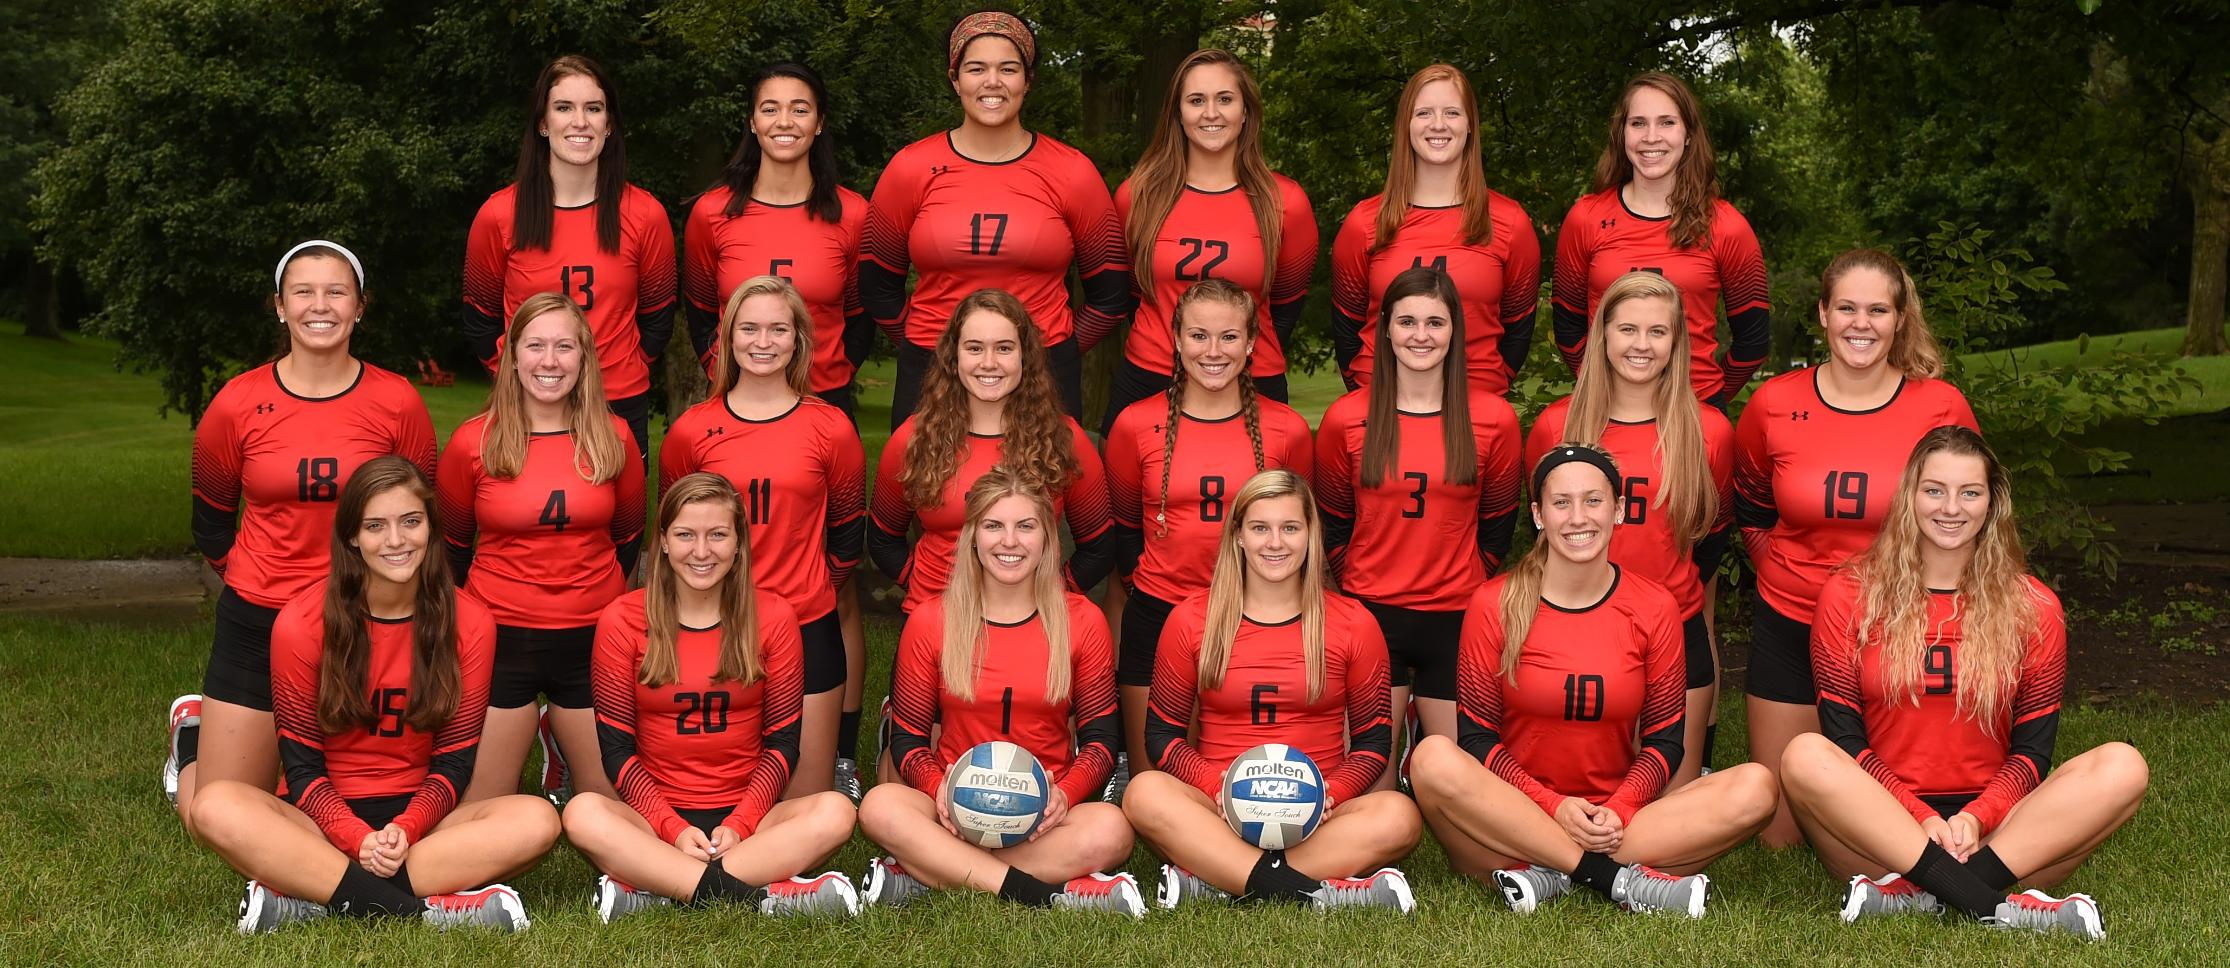 2016 Wittenberg Volleyball